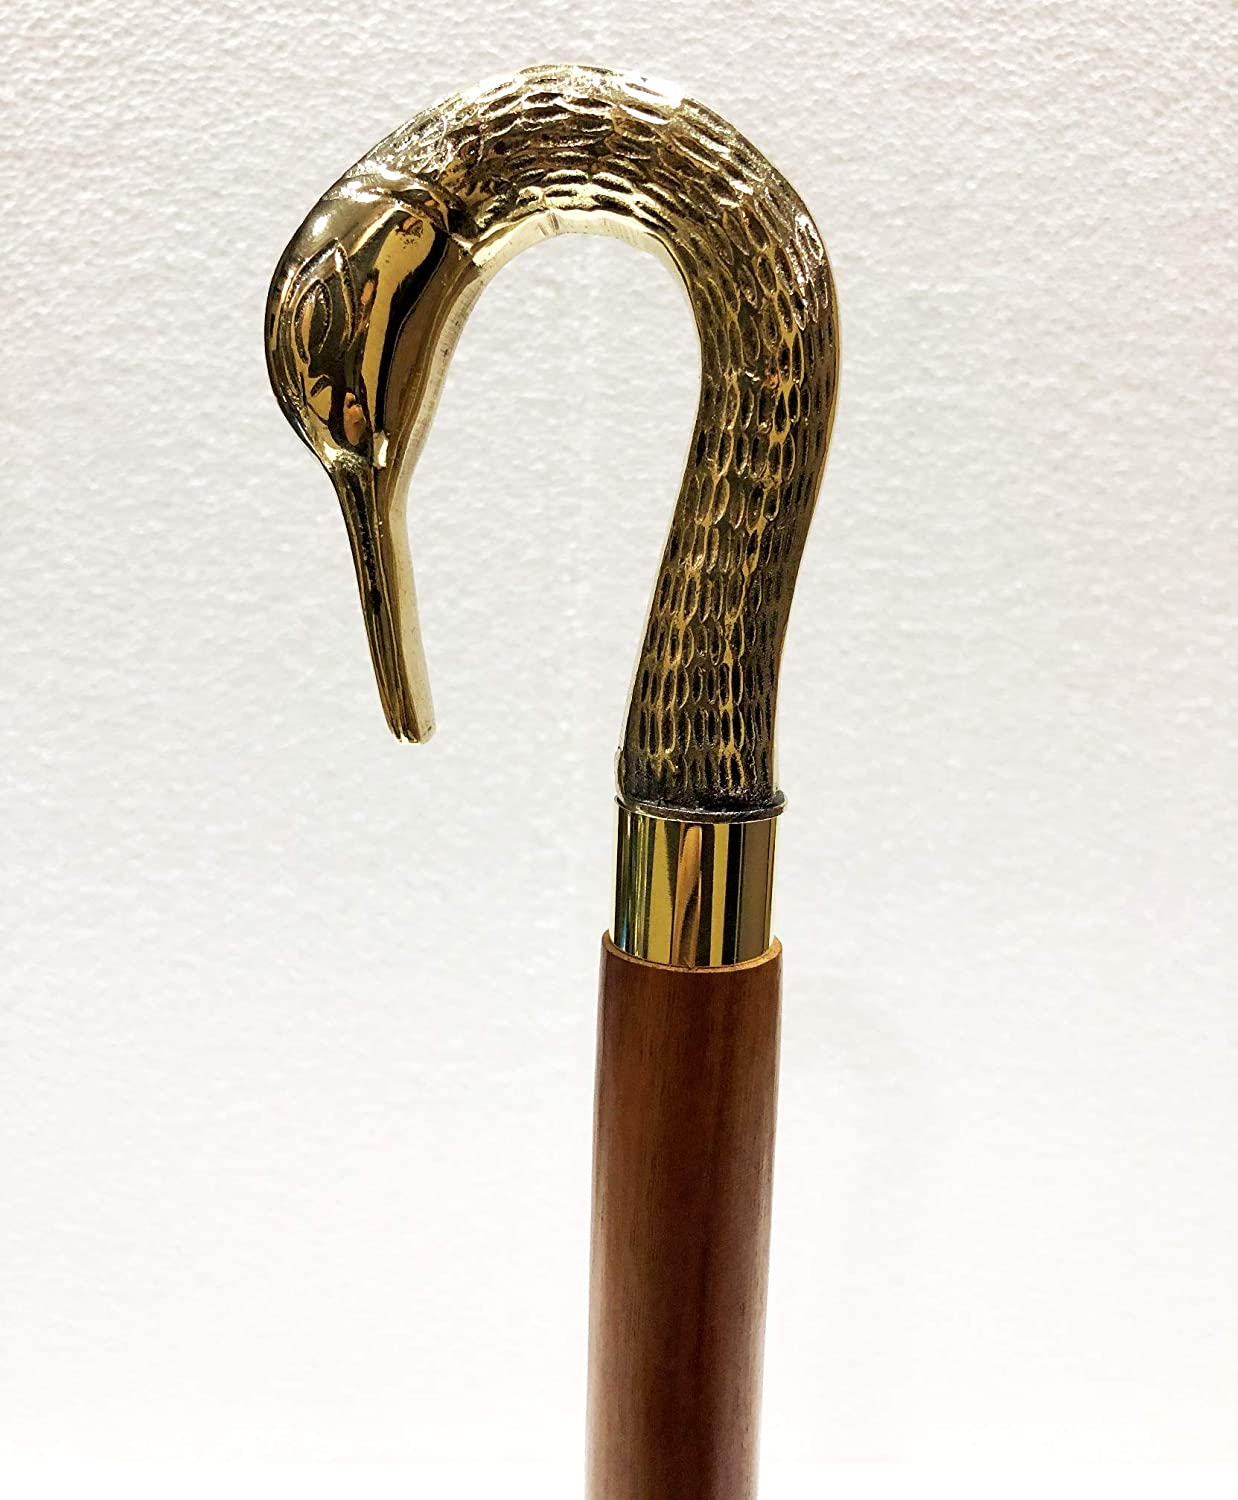 Details about  /Collectible Nautical Lion Design Brass Handle Wooden Walking Stick Item 3 Fold